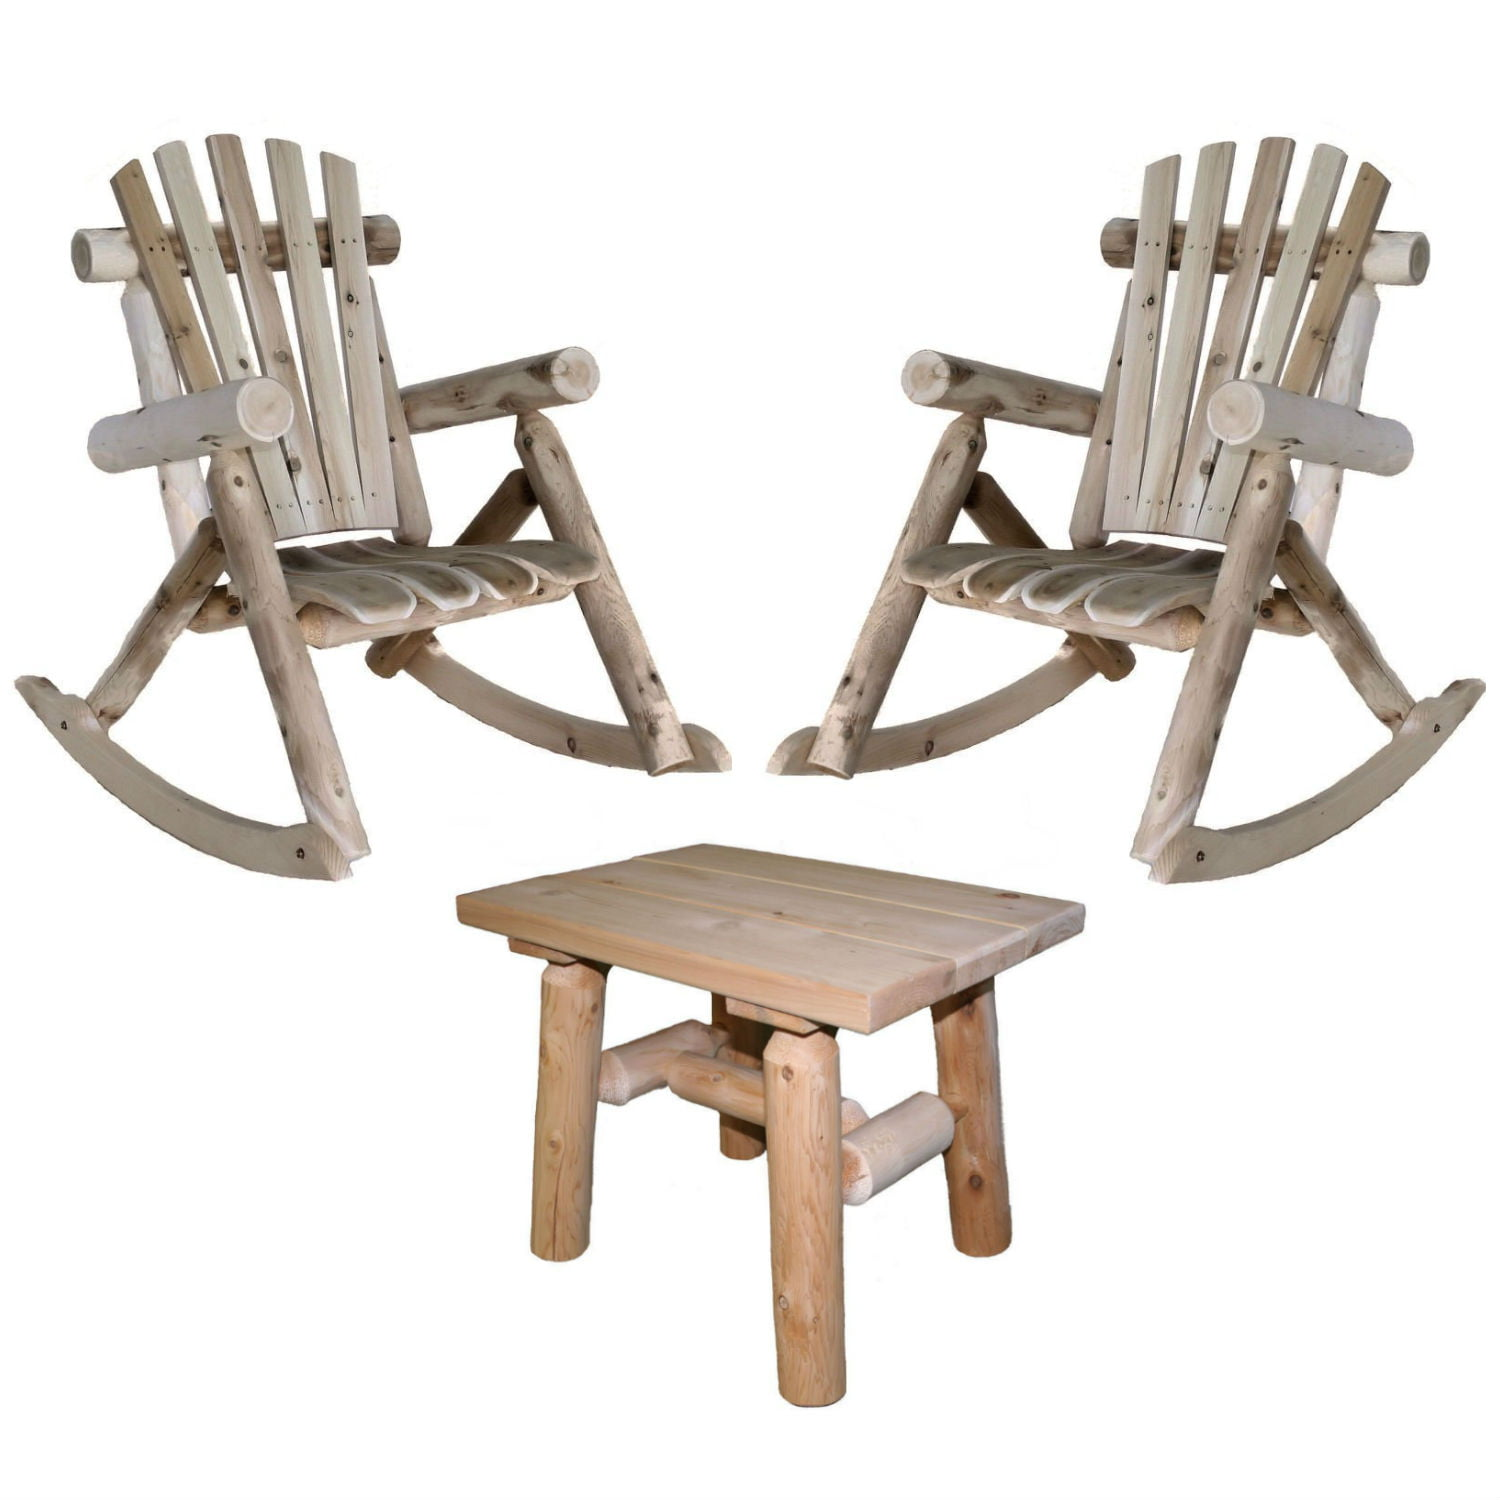 Lakeland Mills Patio Rocking Chair (Set of 2) with End Table by